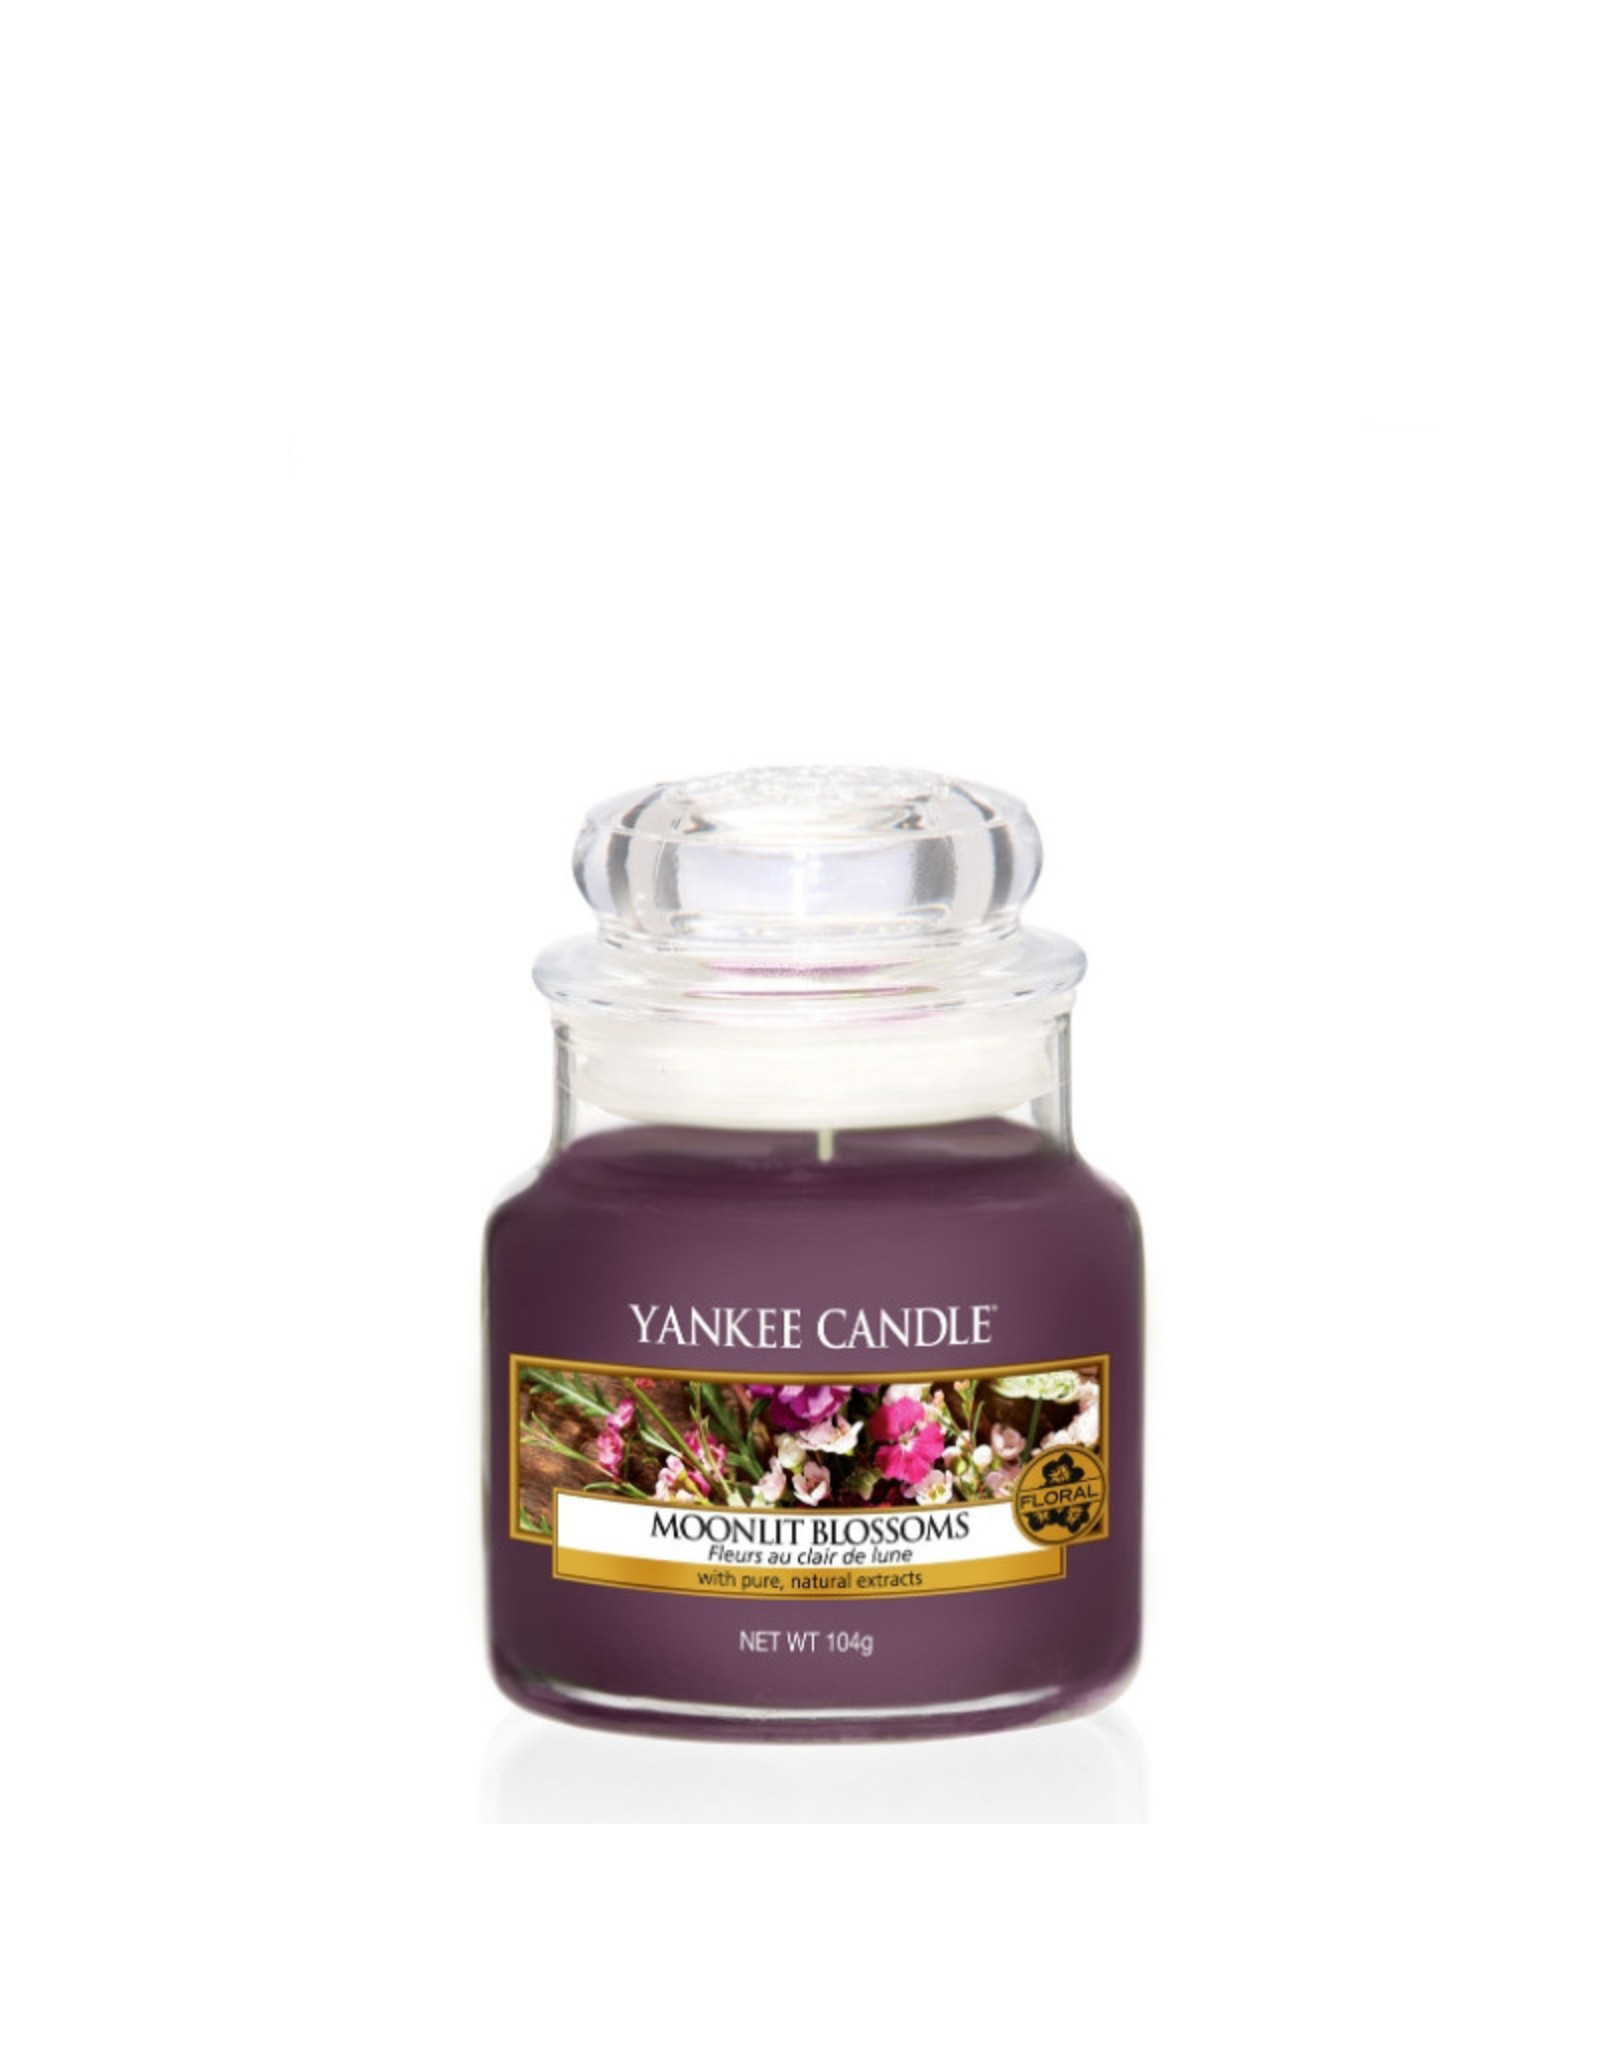 Yankee Candle Moonlit Blossoms - Small Jar